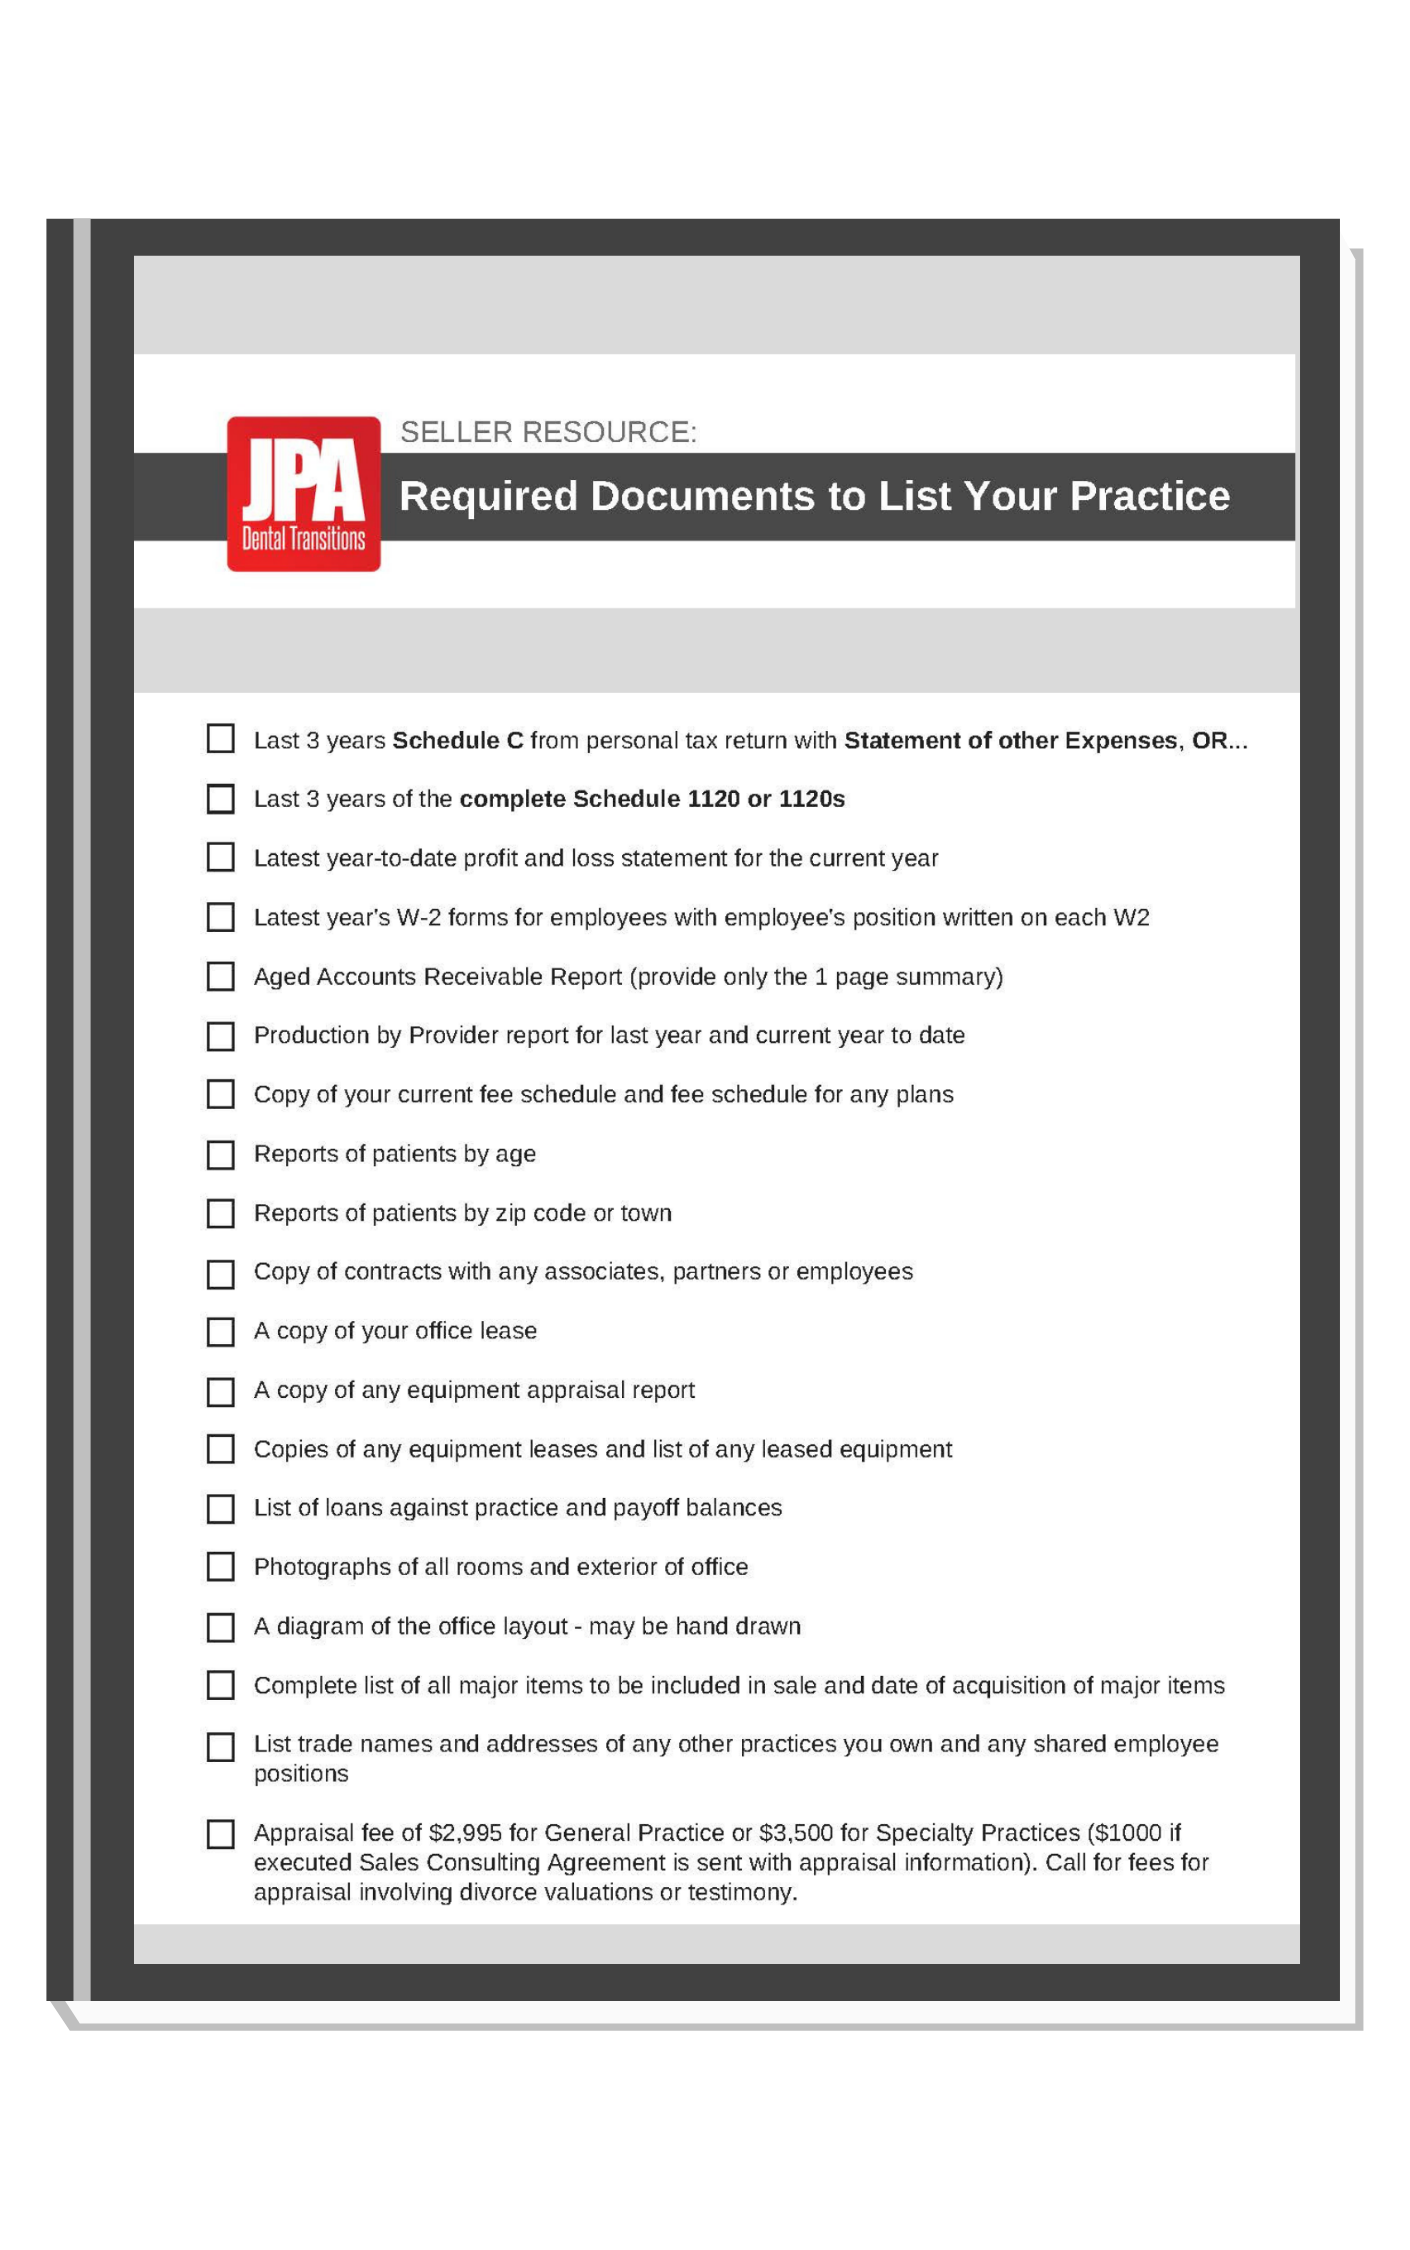 Required Docs Checklist